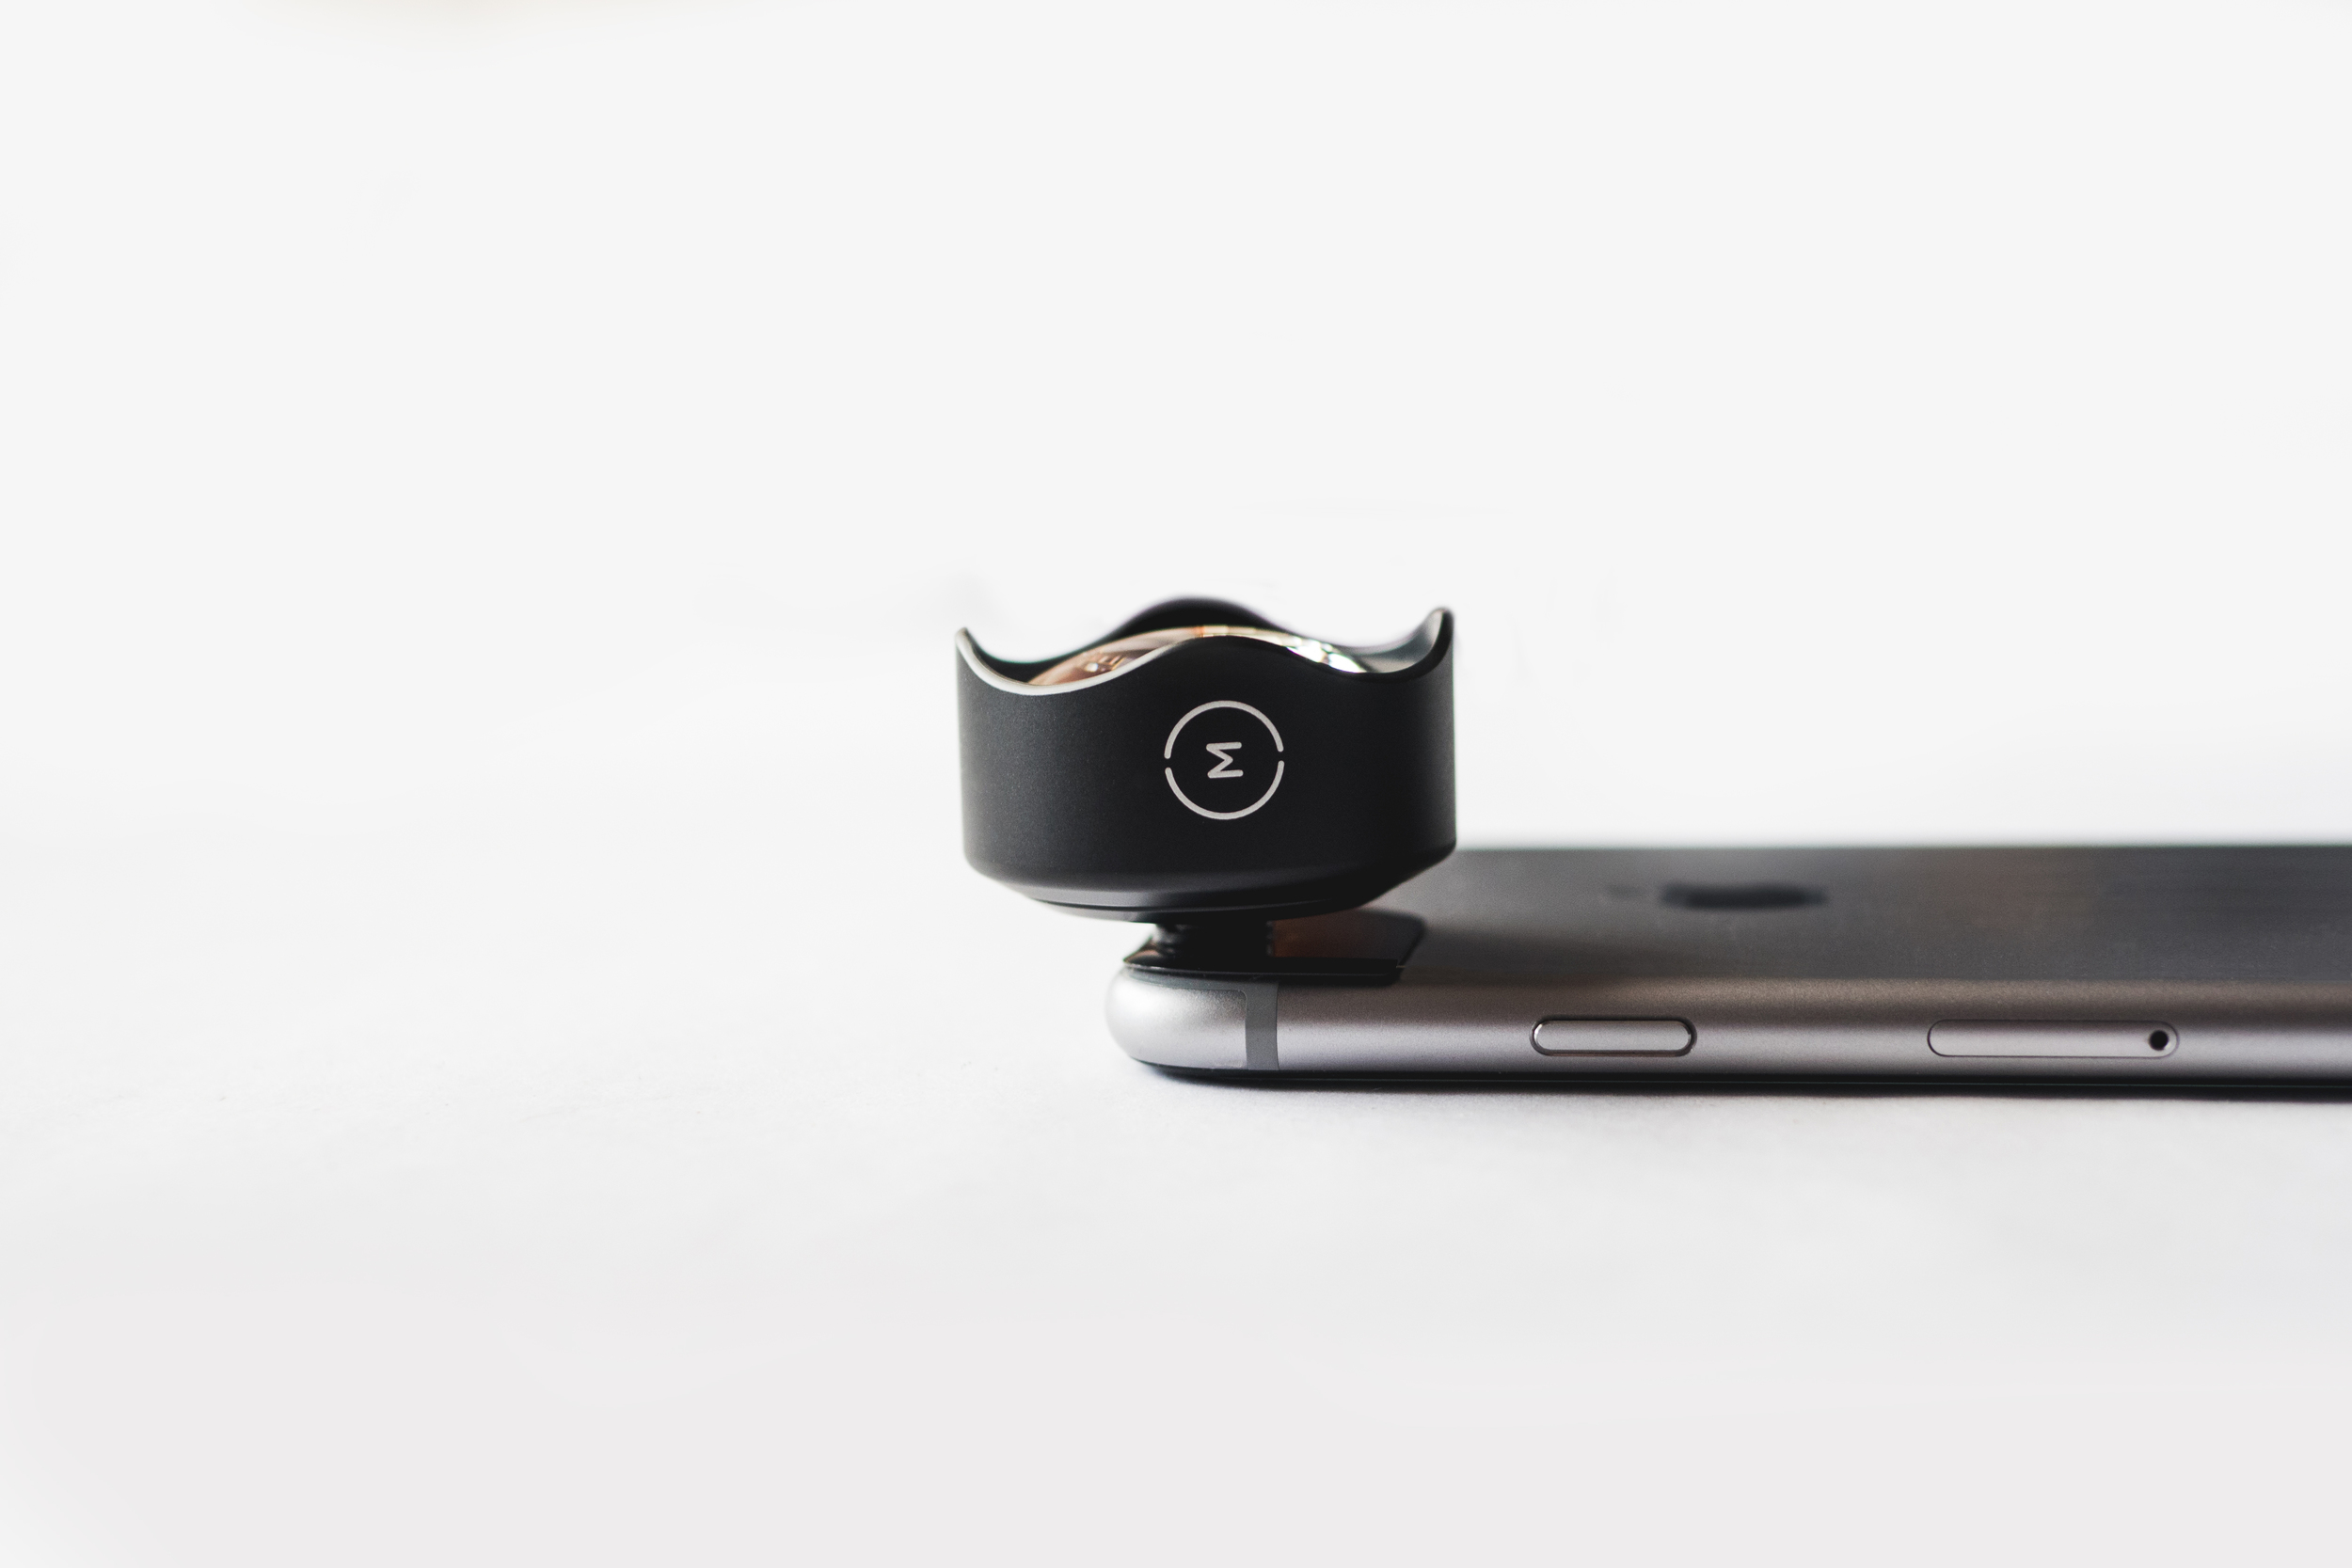 MOMENT LENS WIDE FOR IPHONE 6 PLUS SIDE PROFILE.jpg